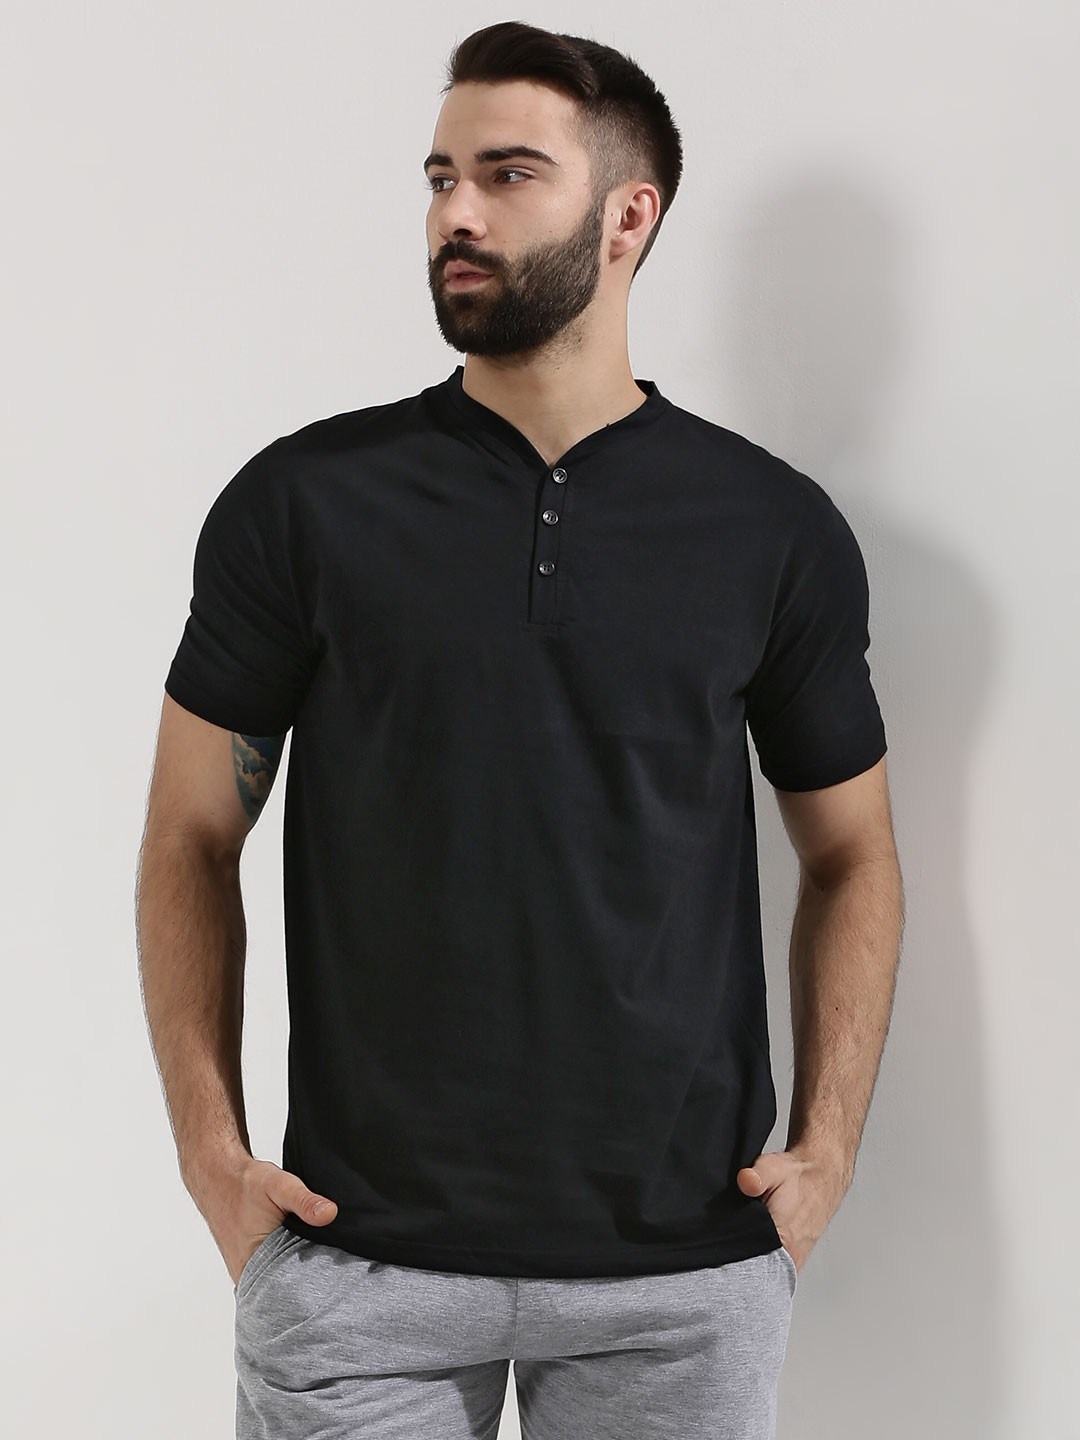 Buy Blotch Henley T Shirt For Men Men 39 S Black T Shirts